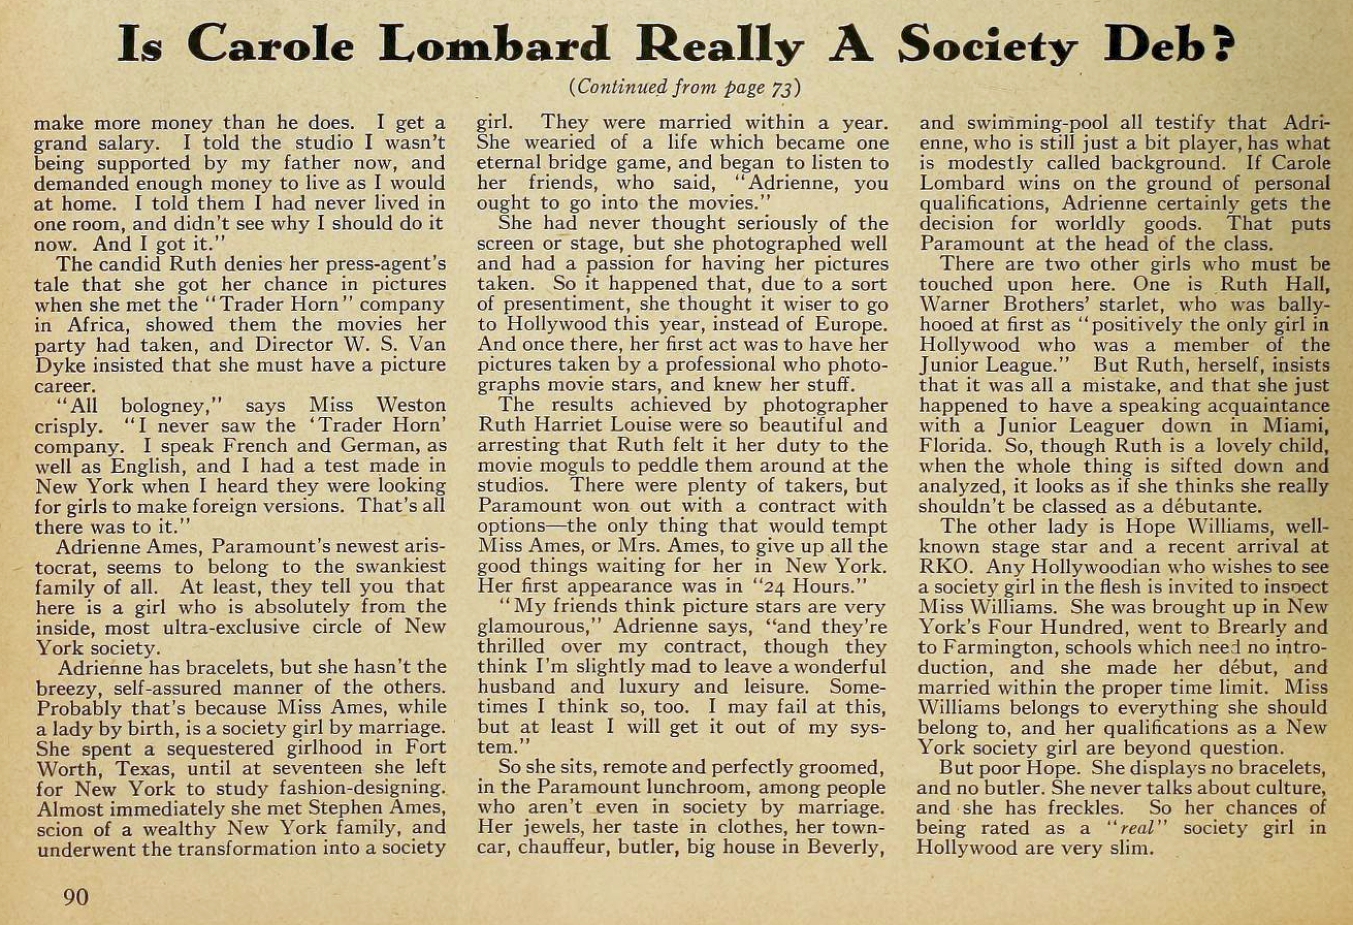 carole lombard motion picture jan 1932 society deb 02a